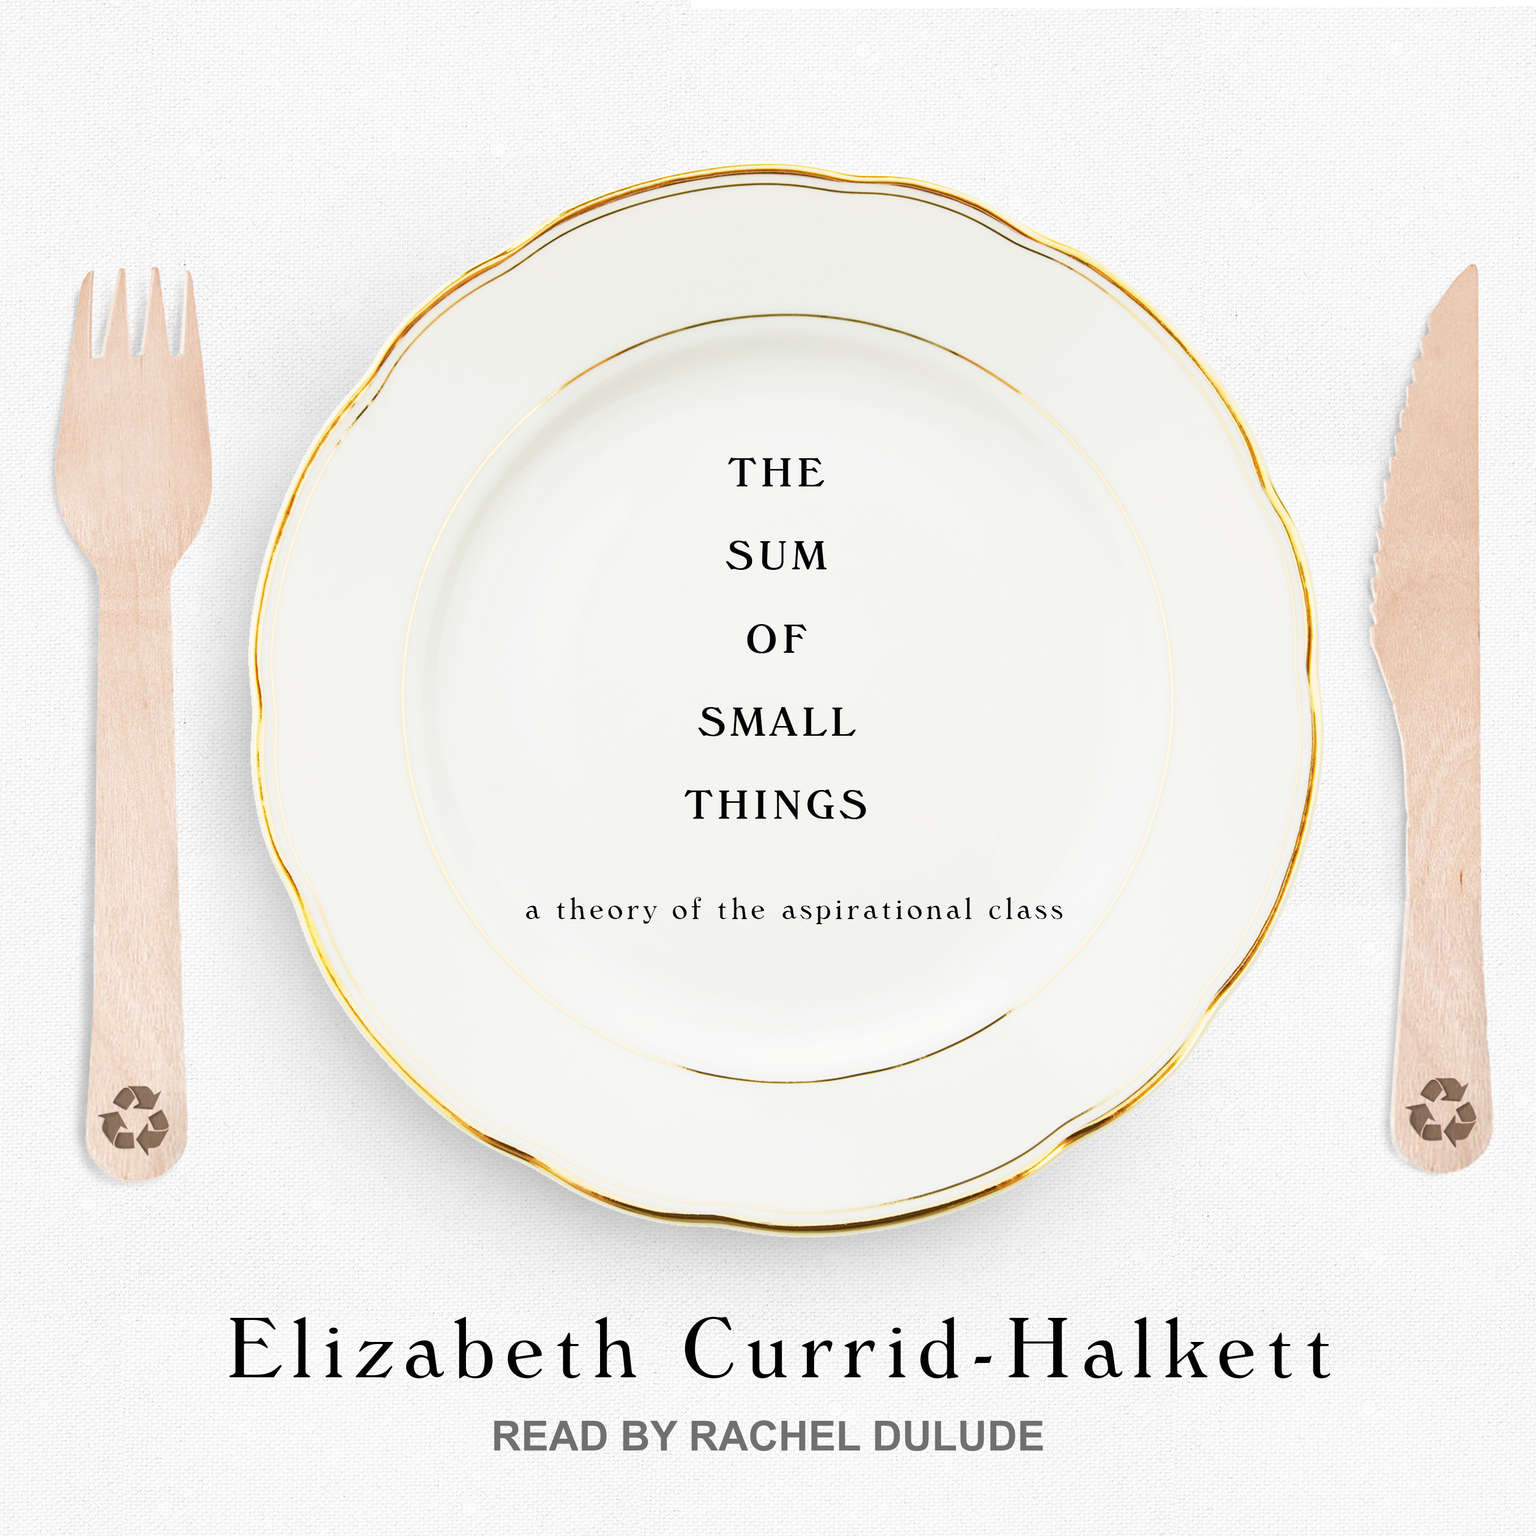 The Sum of Small Things: A Theory of the Aspirational Class Audiobook, by Elizabeth Currid-Halkett